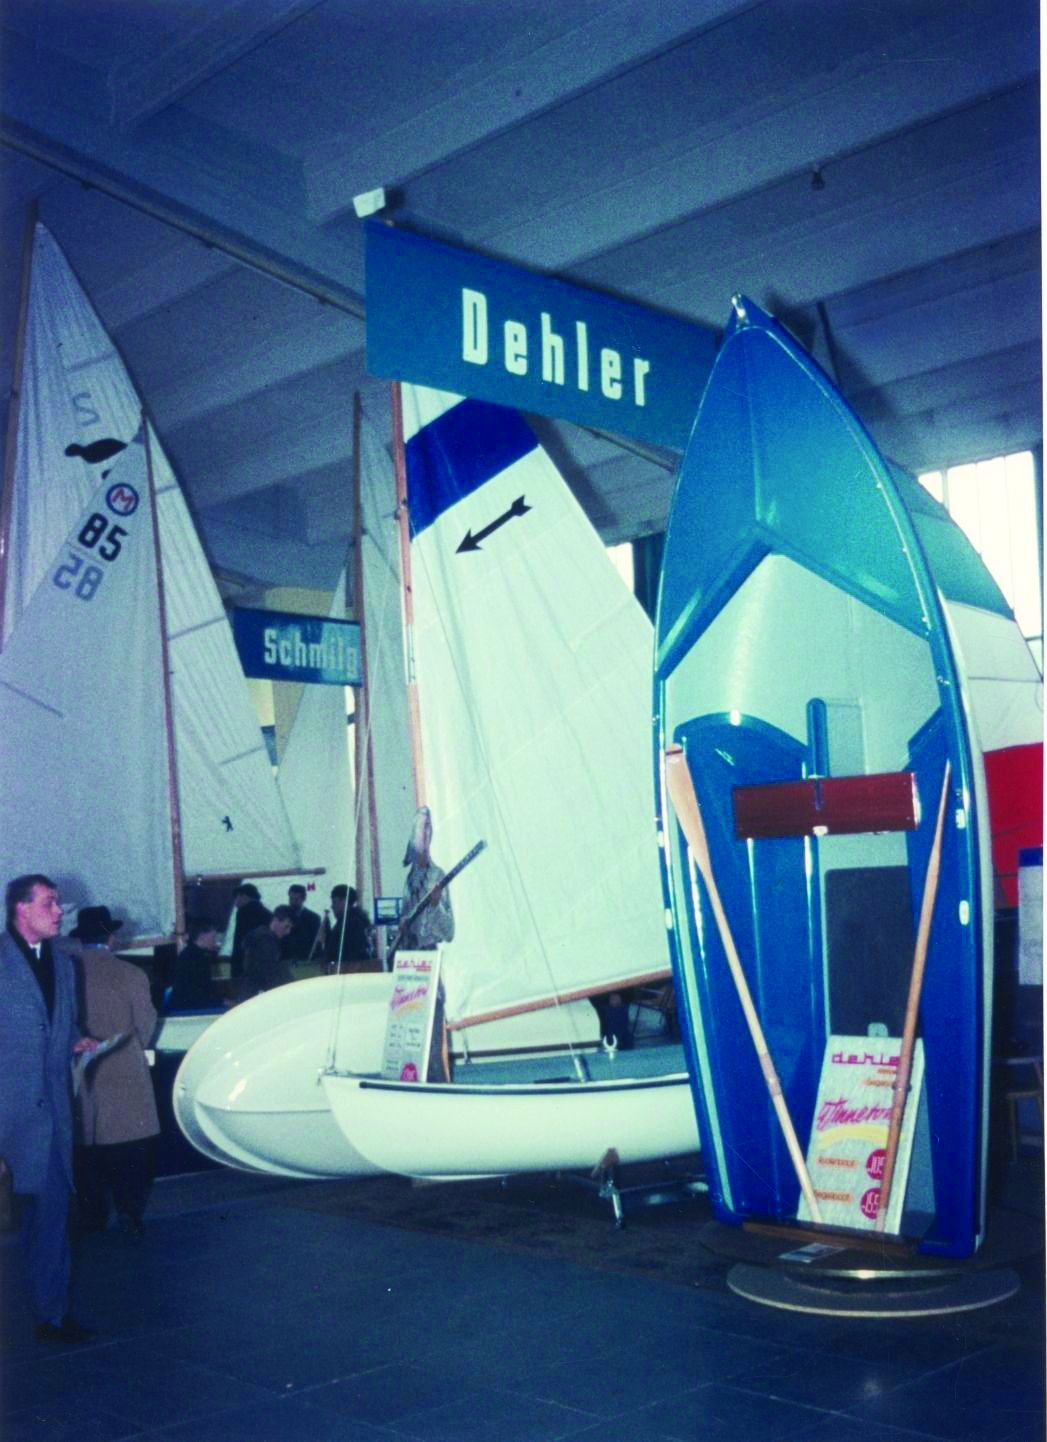 A Winnetou and an Arrow at a German Boat Show in 1966.